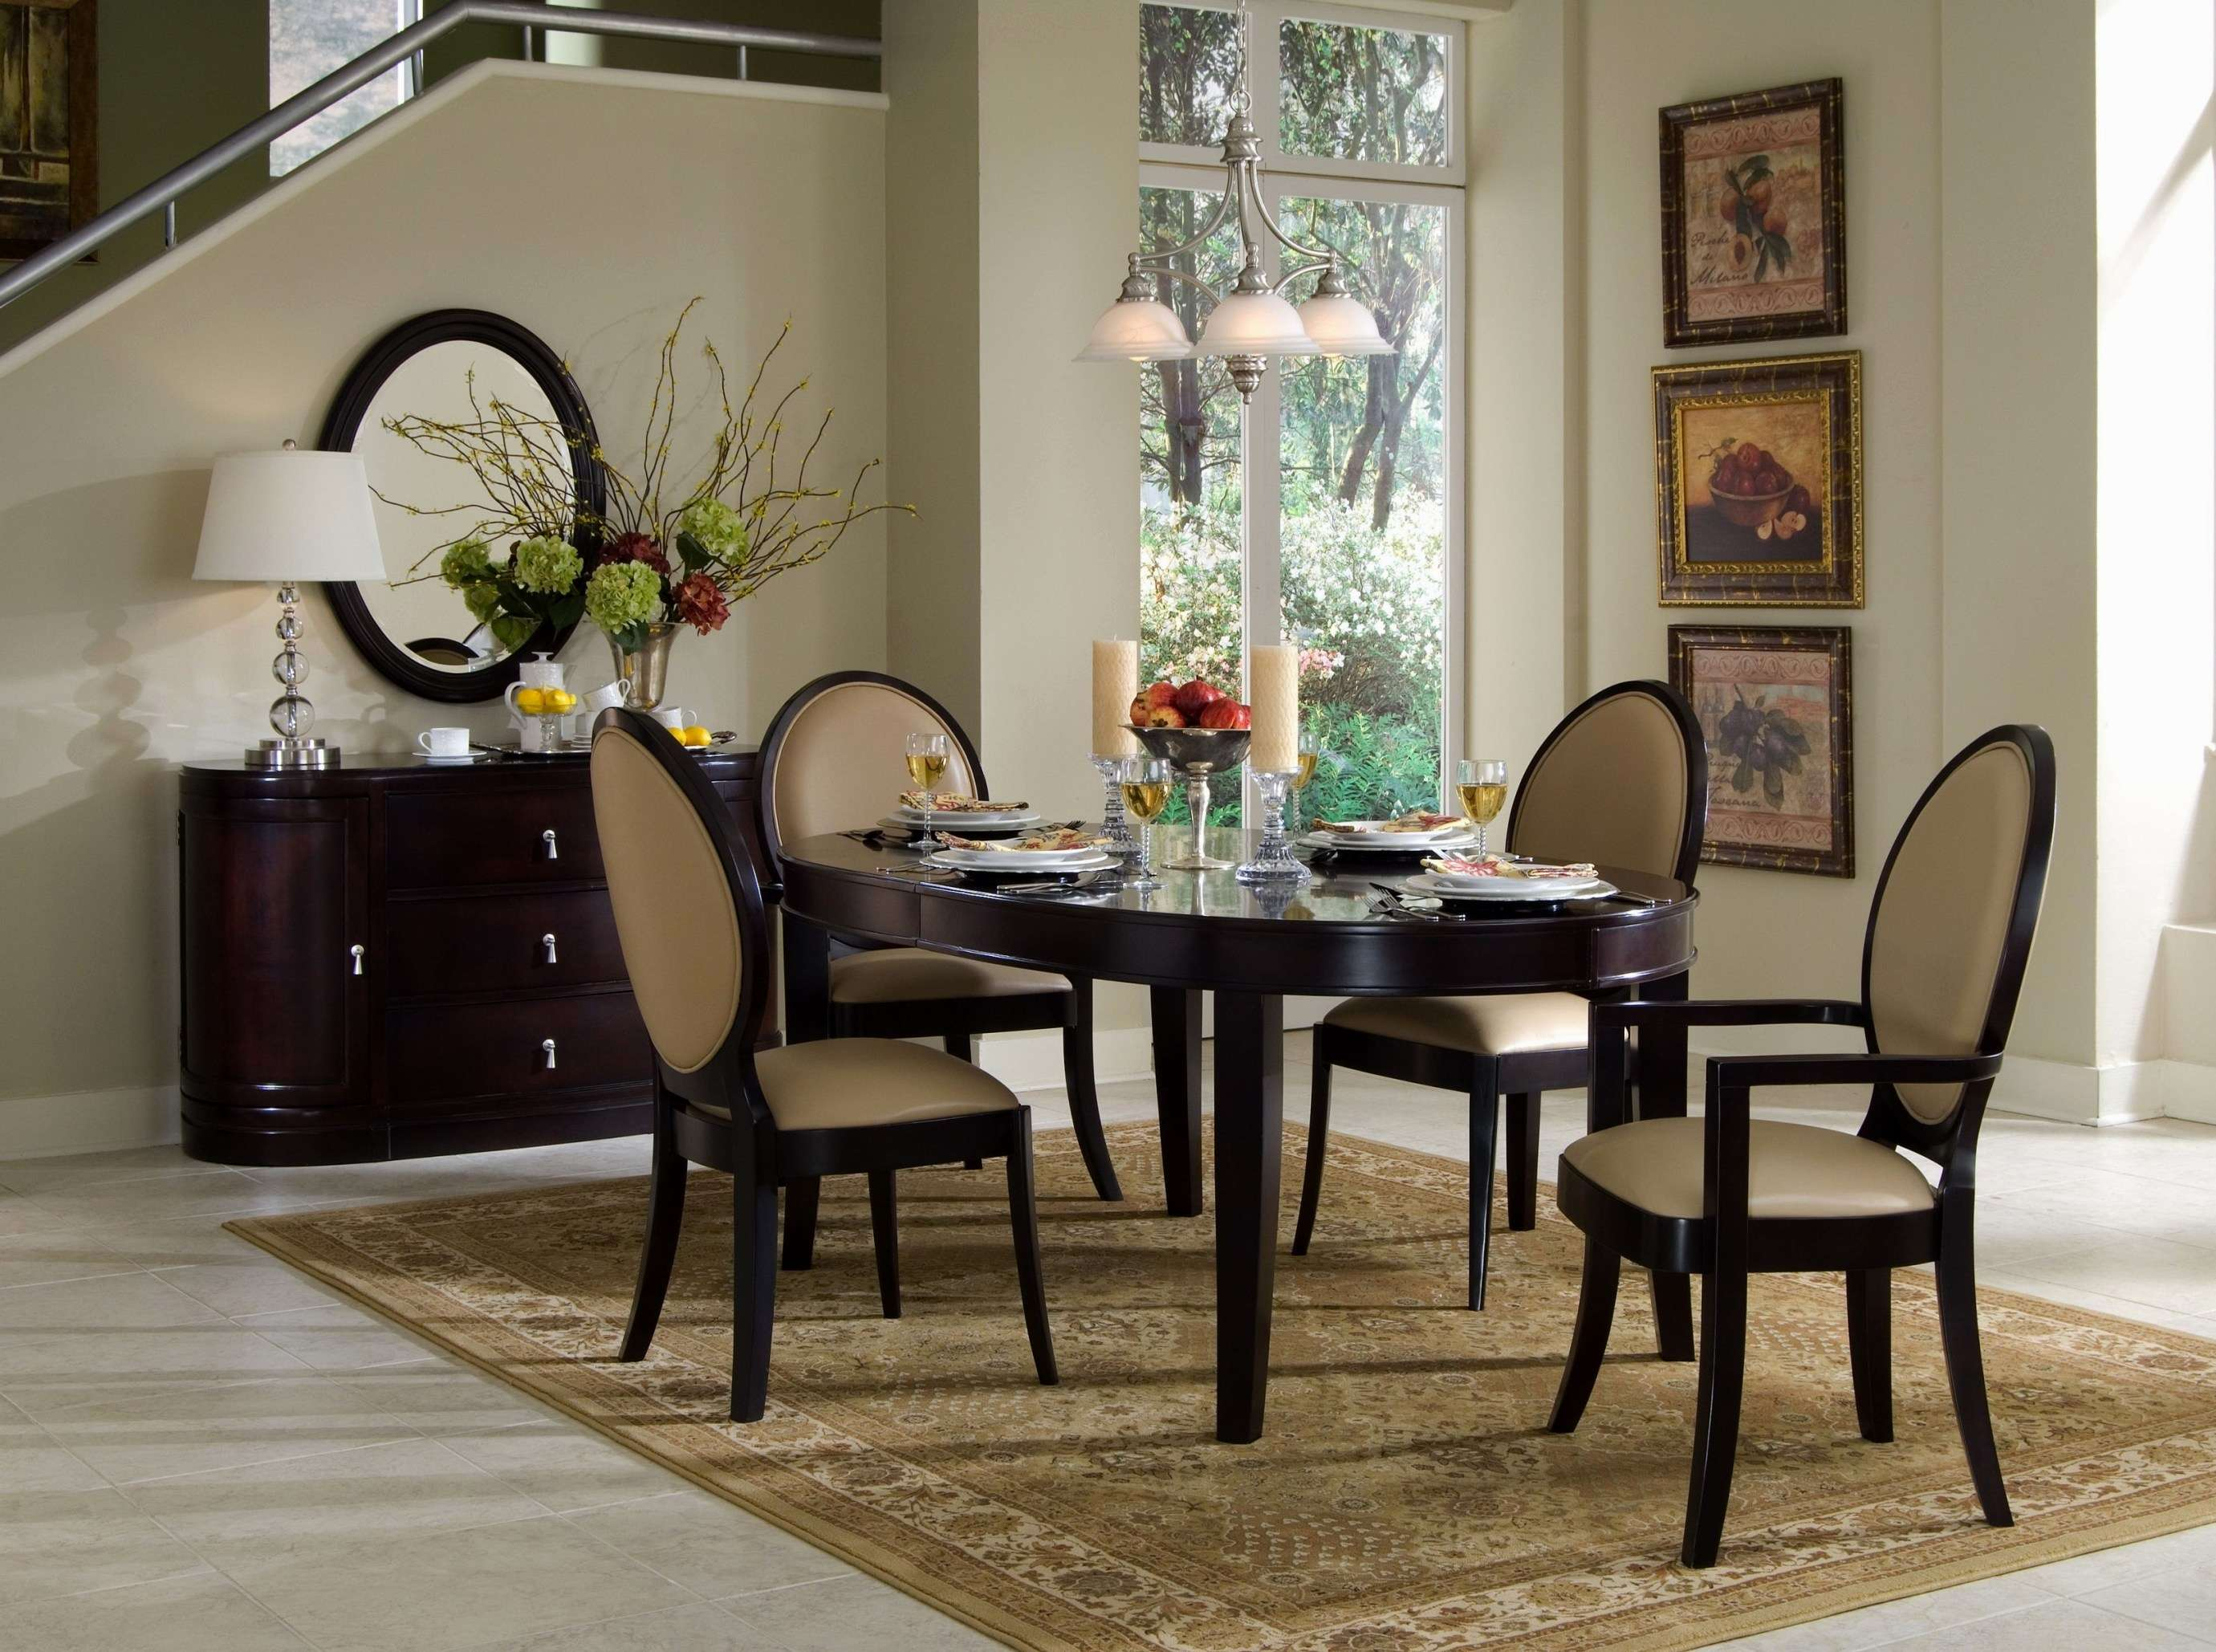 Stunning Formal Dining Room Ideas